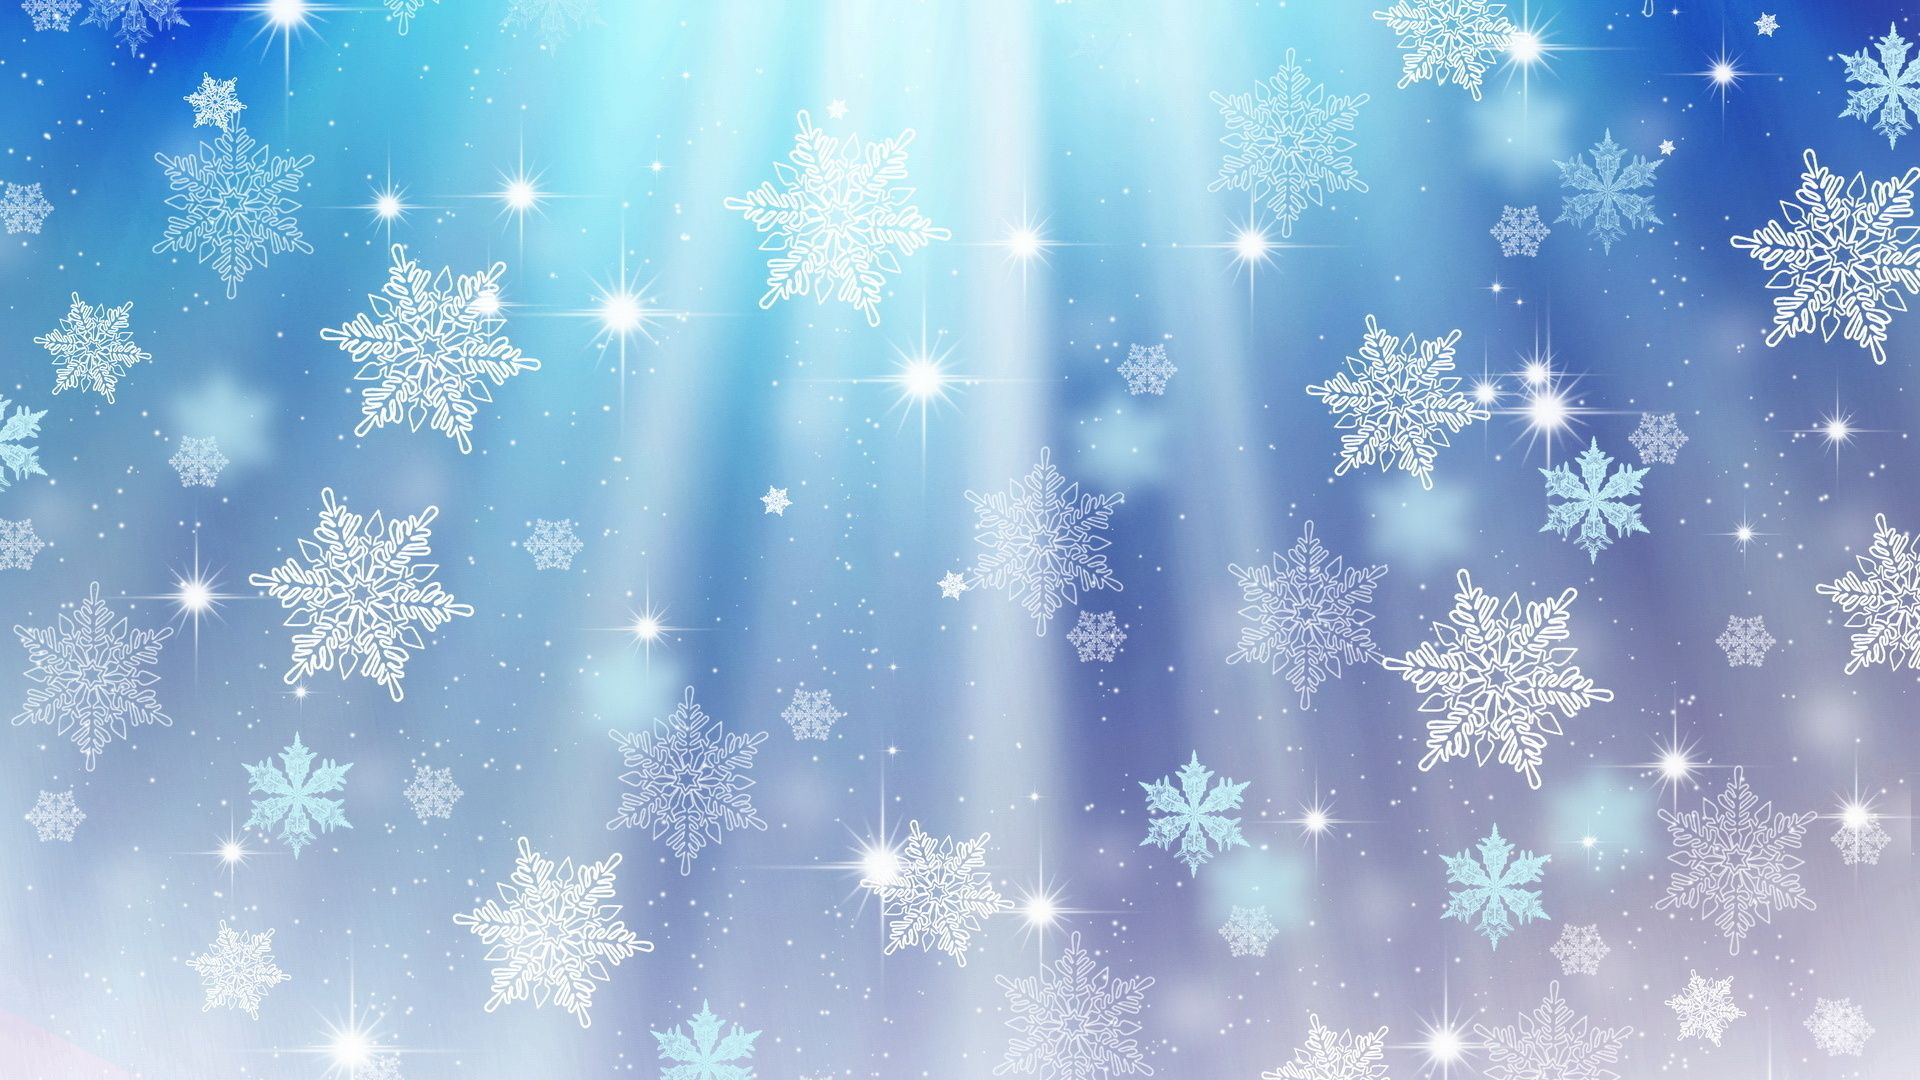 New Year With Snowflakes Wallpaper Picture